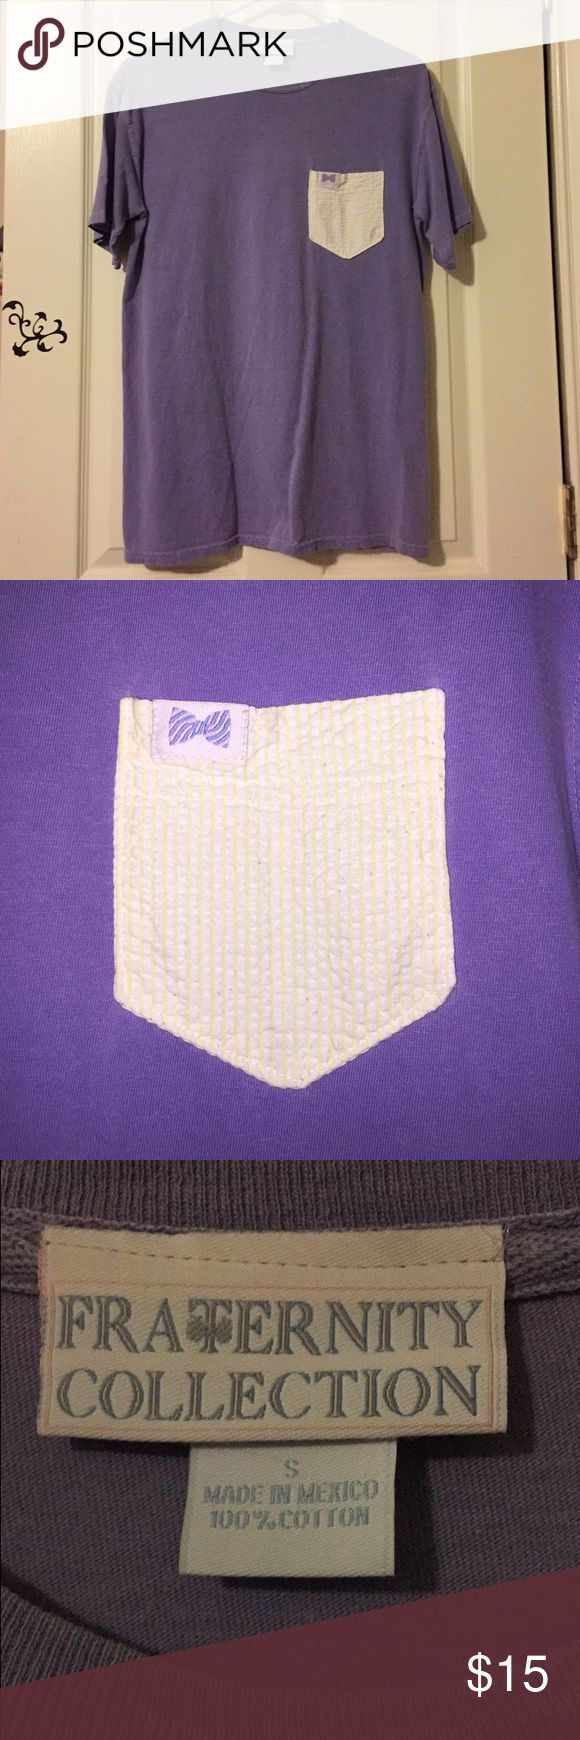 Fraternity Collection Lavender Pocket Tee Fraternity Collection Lavender Tee. Yellow White Stripe Pocket. I've Maybe Worn This Twice, Just Not My Style. Fraternity Collection Tops Tees - Short Sleeve